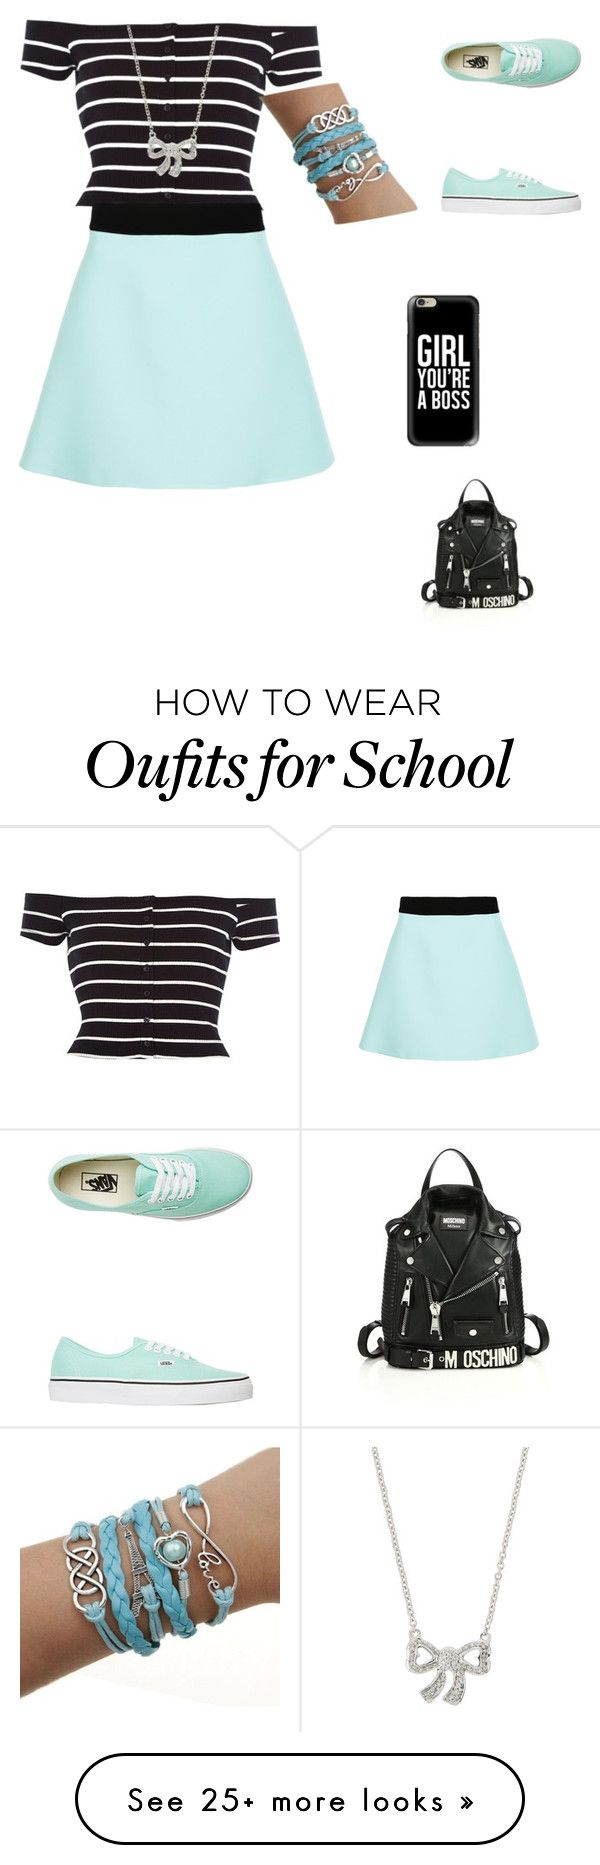 """School day"" by jmcwilliams2003 on Polyvore featuring River Island, FAUSTO PUGLISI, Vans, Poiray Paris, Casetify, Moschino, women's clothing, women's fashion, women and female"